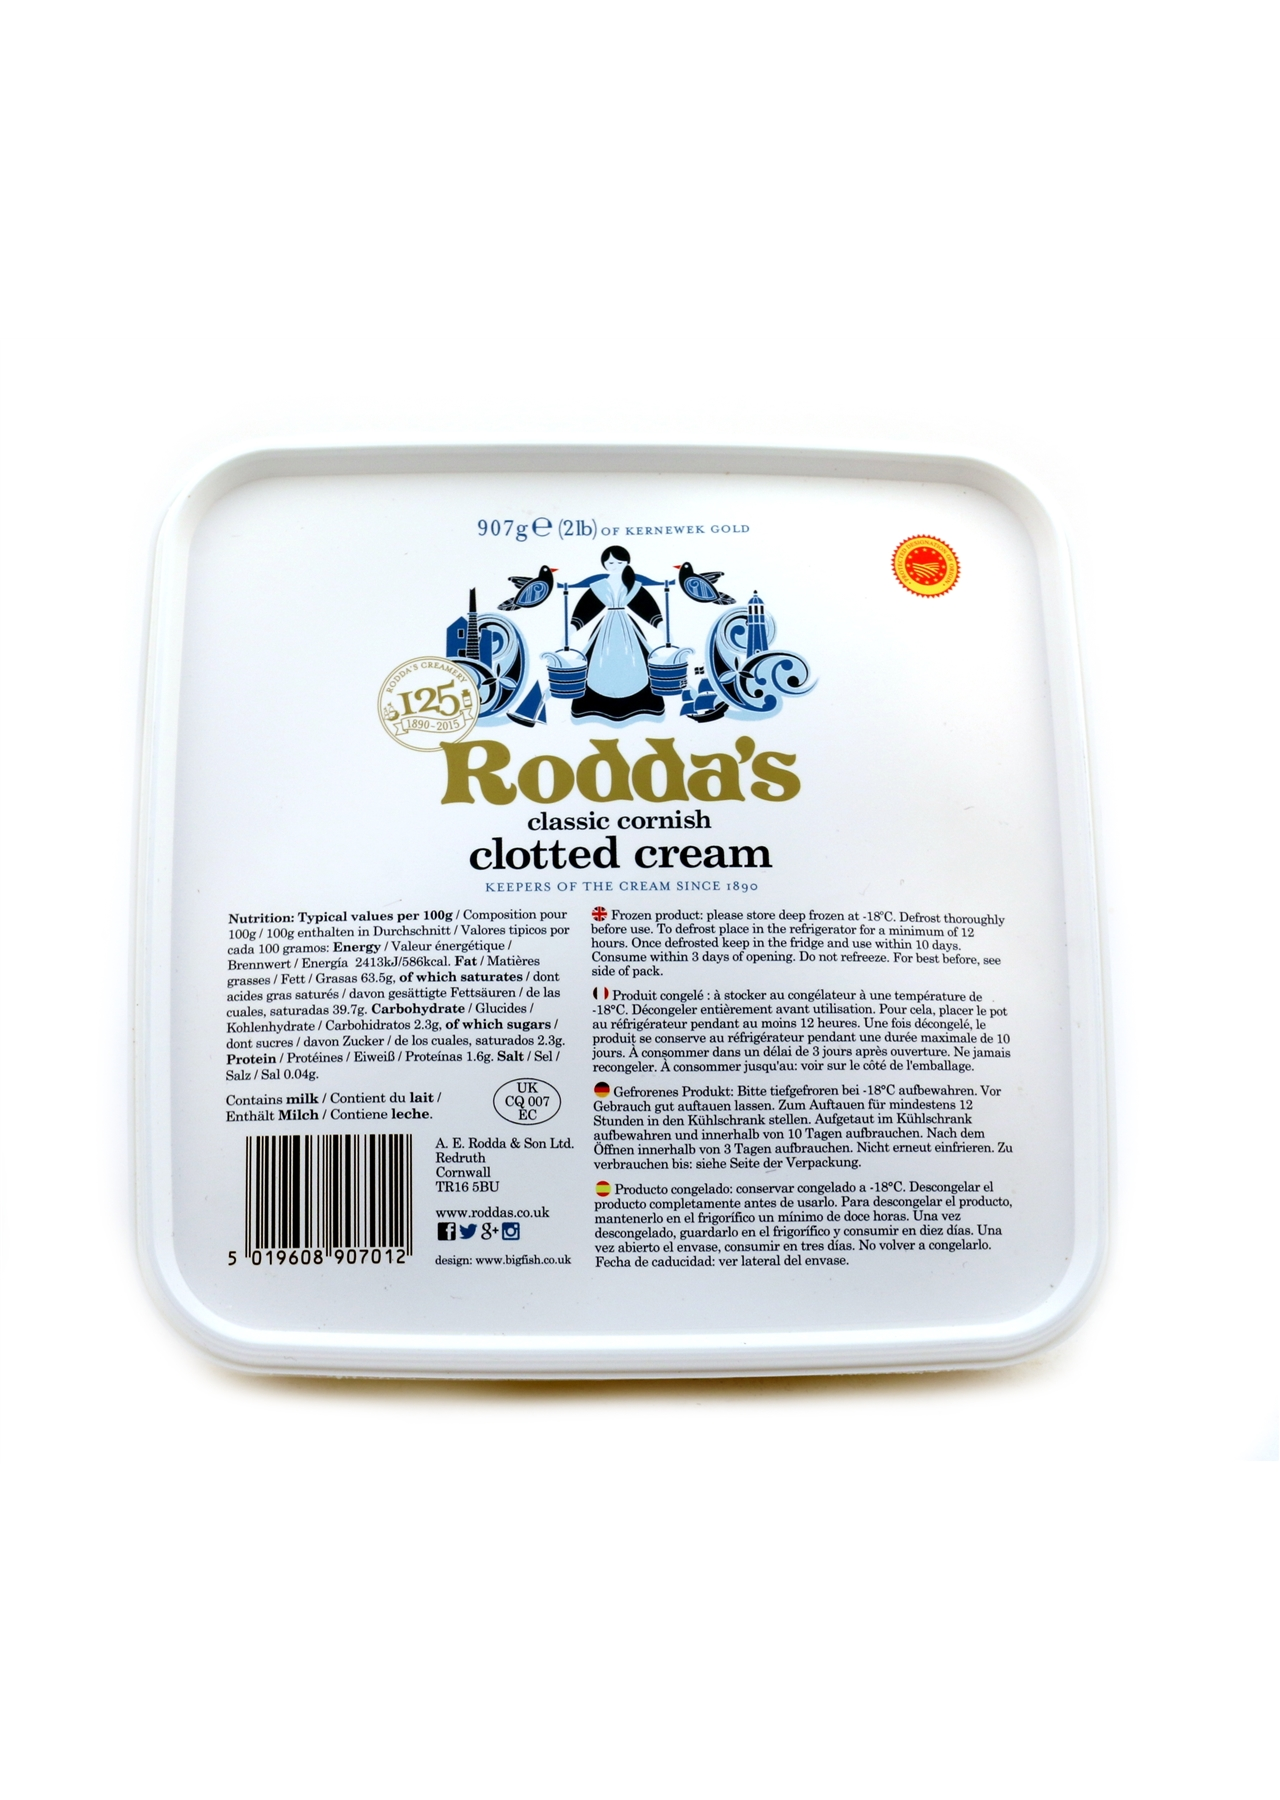 Rodda's Cornish Clotted Cream 907g